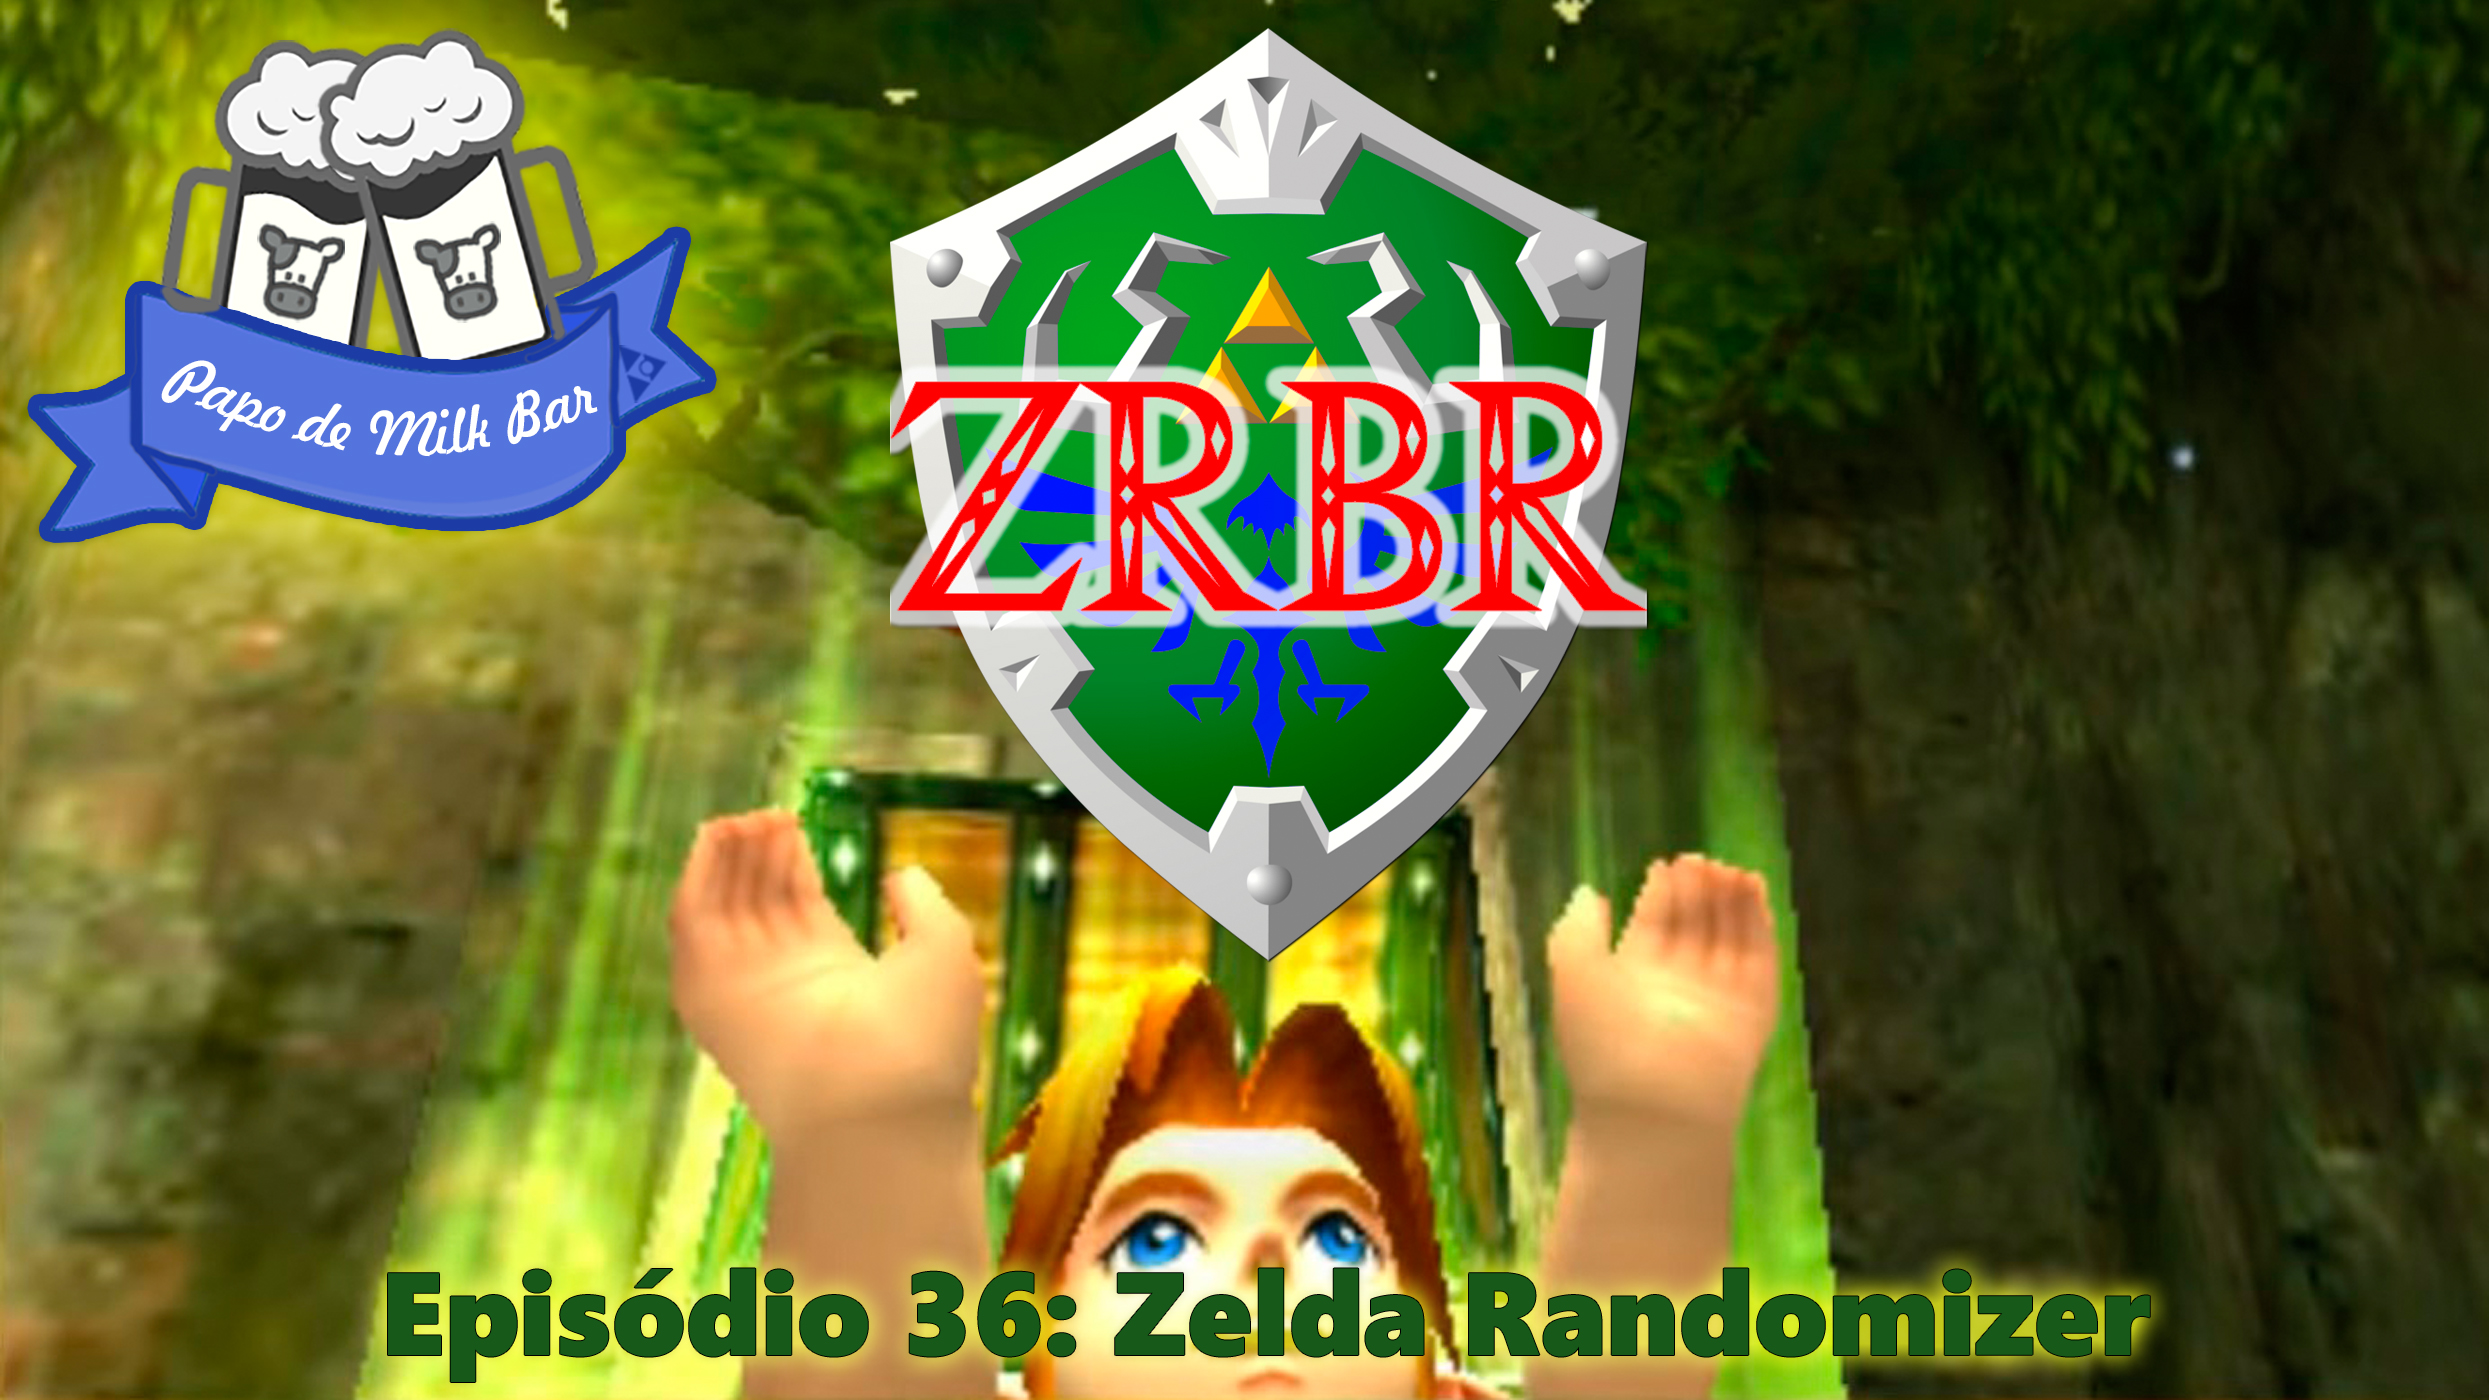 Papo de Milk Bar 36 Zelda Randomizer